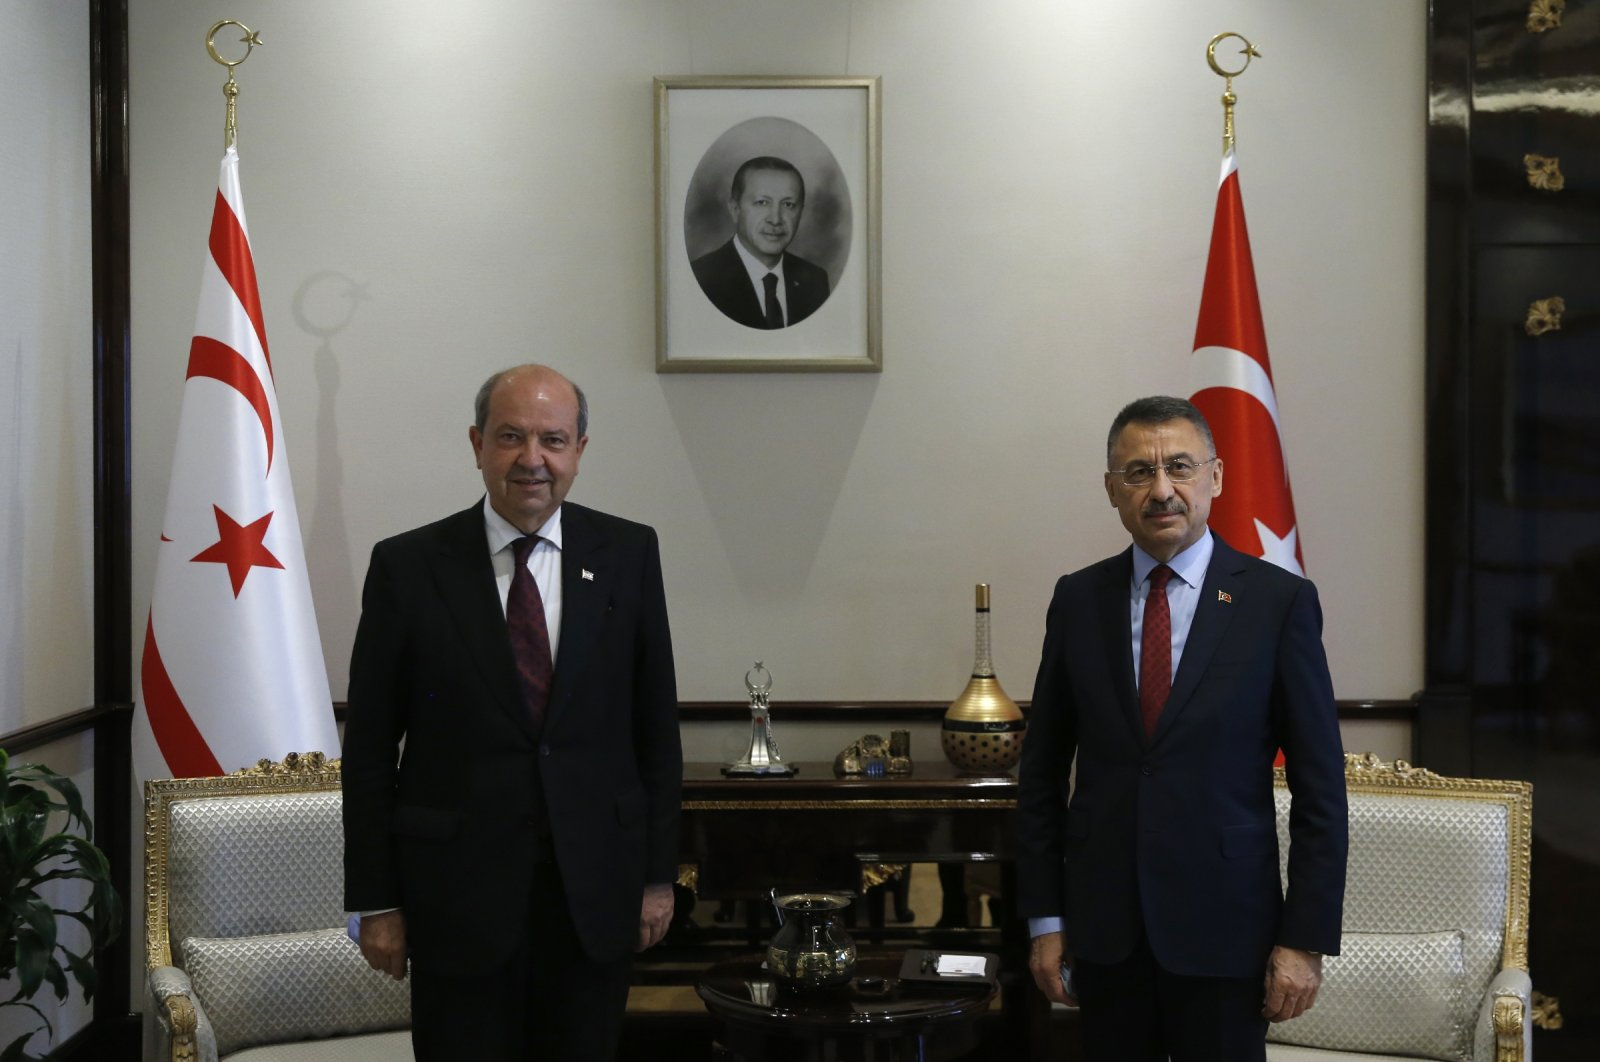 Vice President Fuat Oktay receives TRNC Prime Minister Ersin Tatar at the Presidential Complex in Ankara, Aug. 4, 2020. (AA Photo)